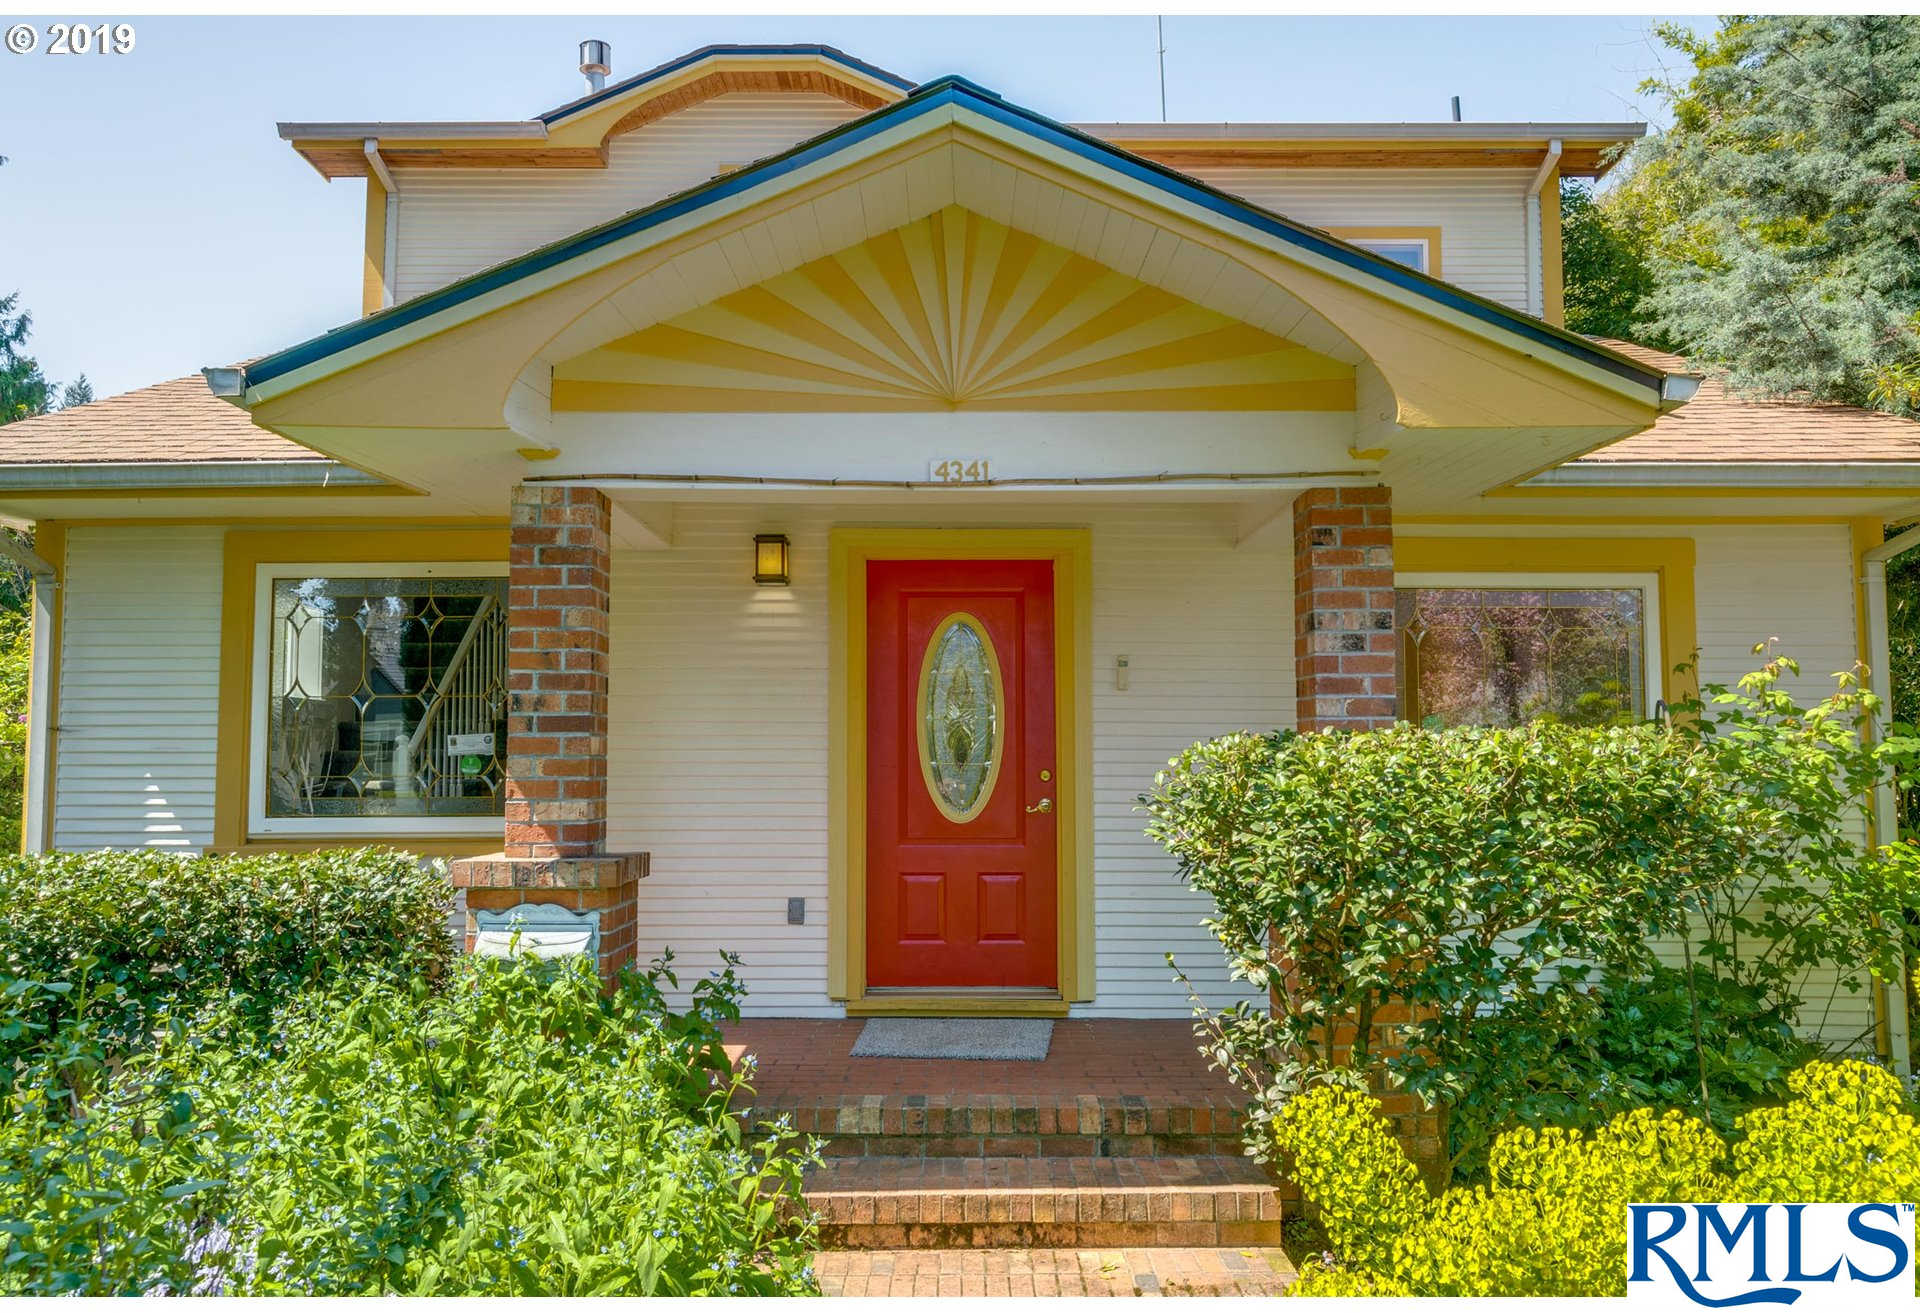 4341 NE 92ND Ave, Portland, OR 97220 now has a new price of $360,000!